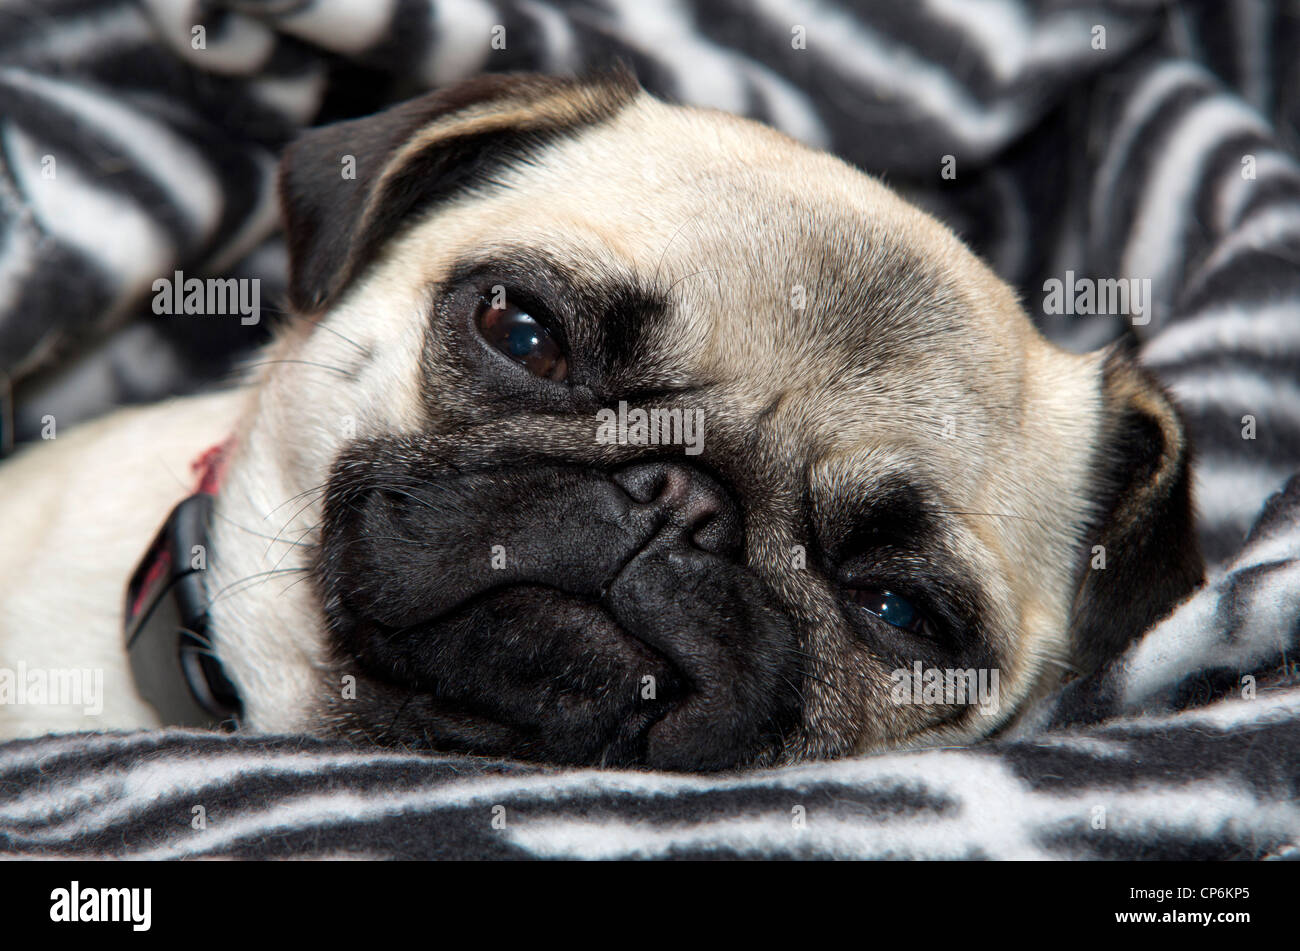 A one year old fawn coloured Chinese Pug dog getting sleepy on a zebra print background. - Stock Image